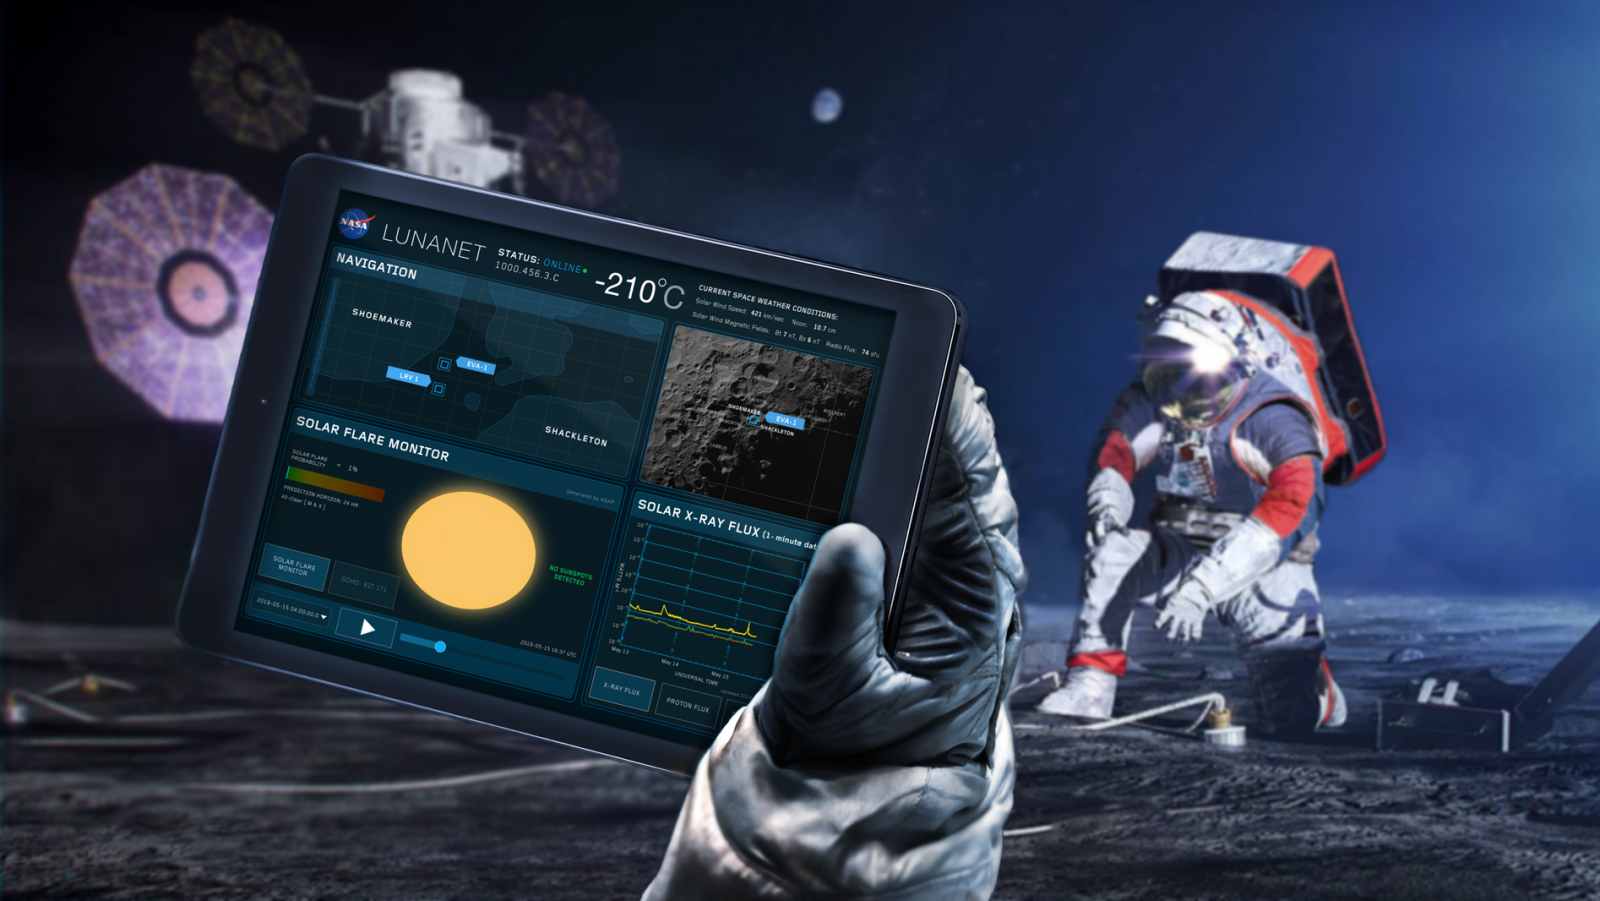 An rendering of an astronaut on the Moon accessing the LunaNet network. Credit: NASA